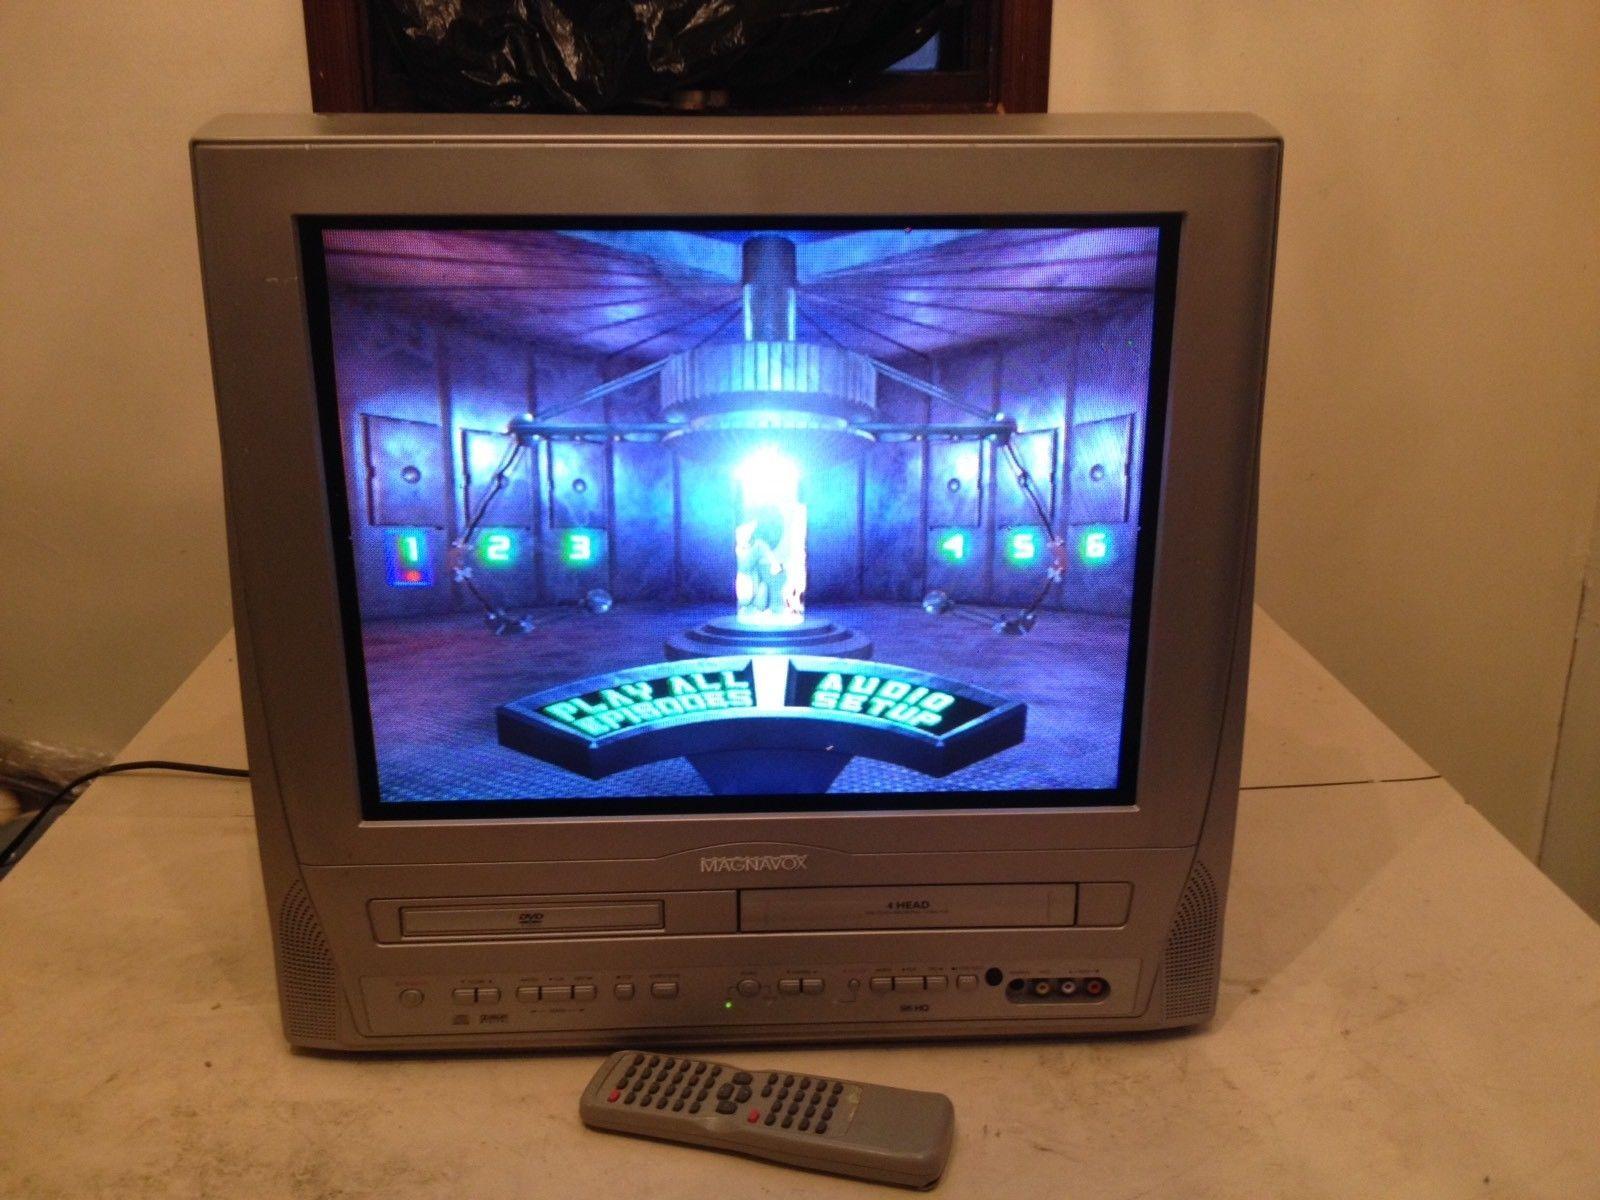 Magnavox 20 TV / VCR / DVD Combo Player MWC20T6 VHS Flat